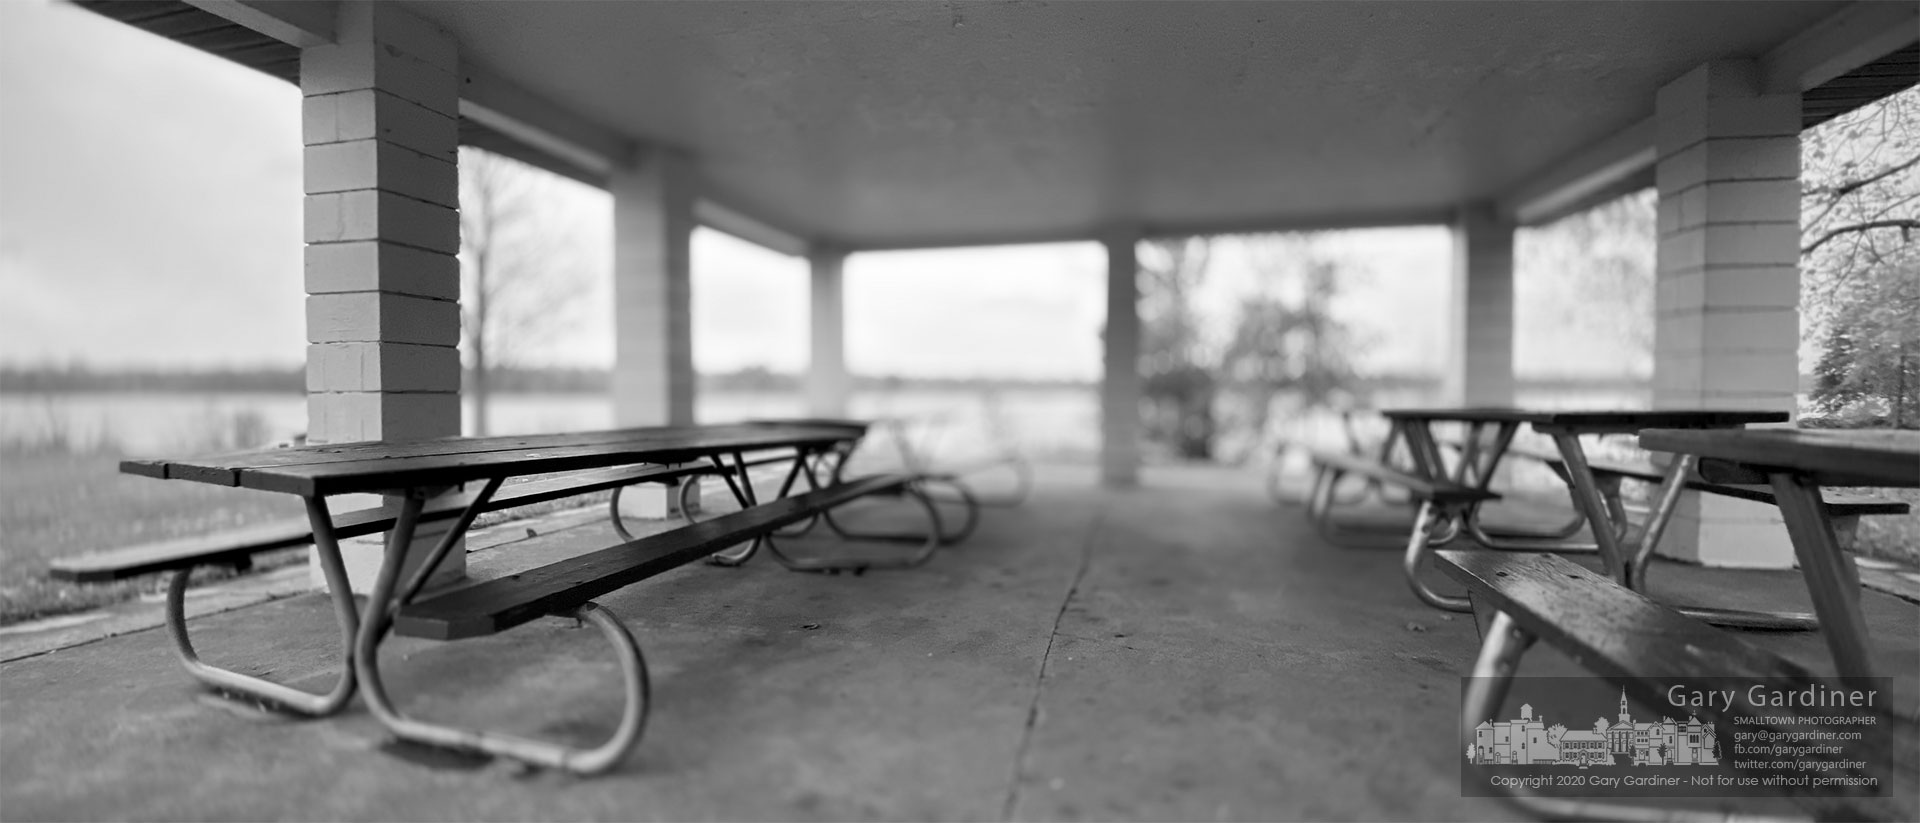 Picnic tables sit unused on a blustery November afternoon as a cold front brought the greys of winter-like weather to Red Bank Park. My Final Photo for Nov. 1, 2020.